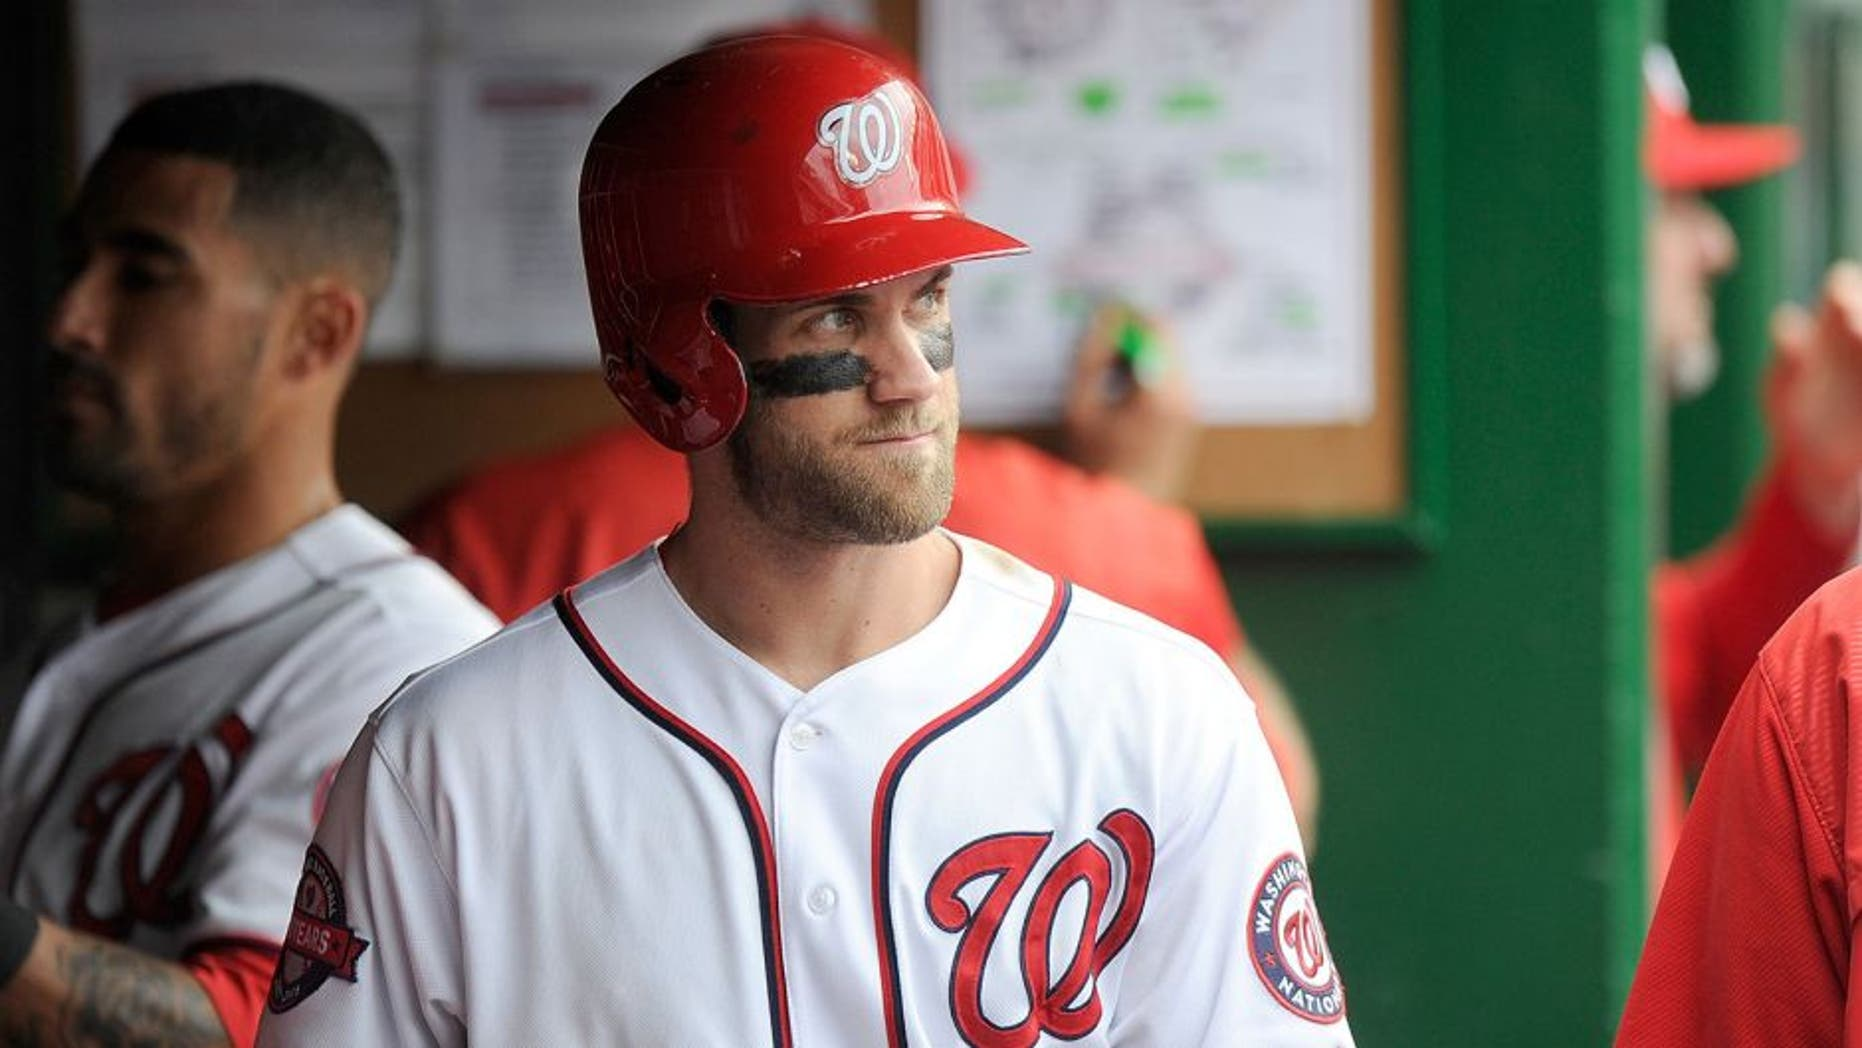 WASHINGTON, DC - SEPTEMBER 27: Bryce Harper #34 of the Washington Nationals watches the game against the Philadelphia Phillies at Nationals Park on September 27, 2015 in Washington, DC. (Photo by G Fiume/Getty Images)